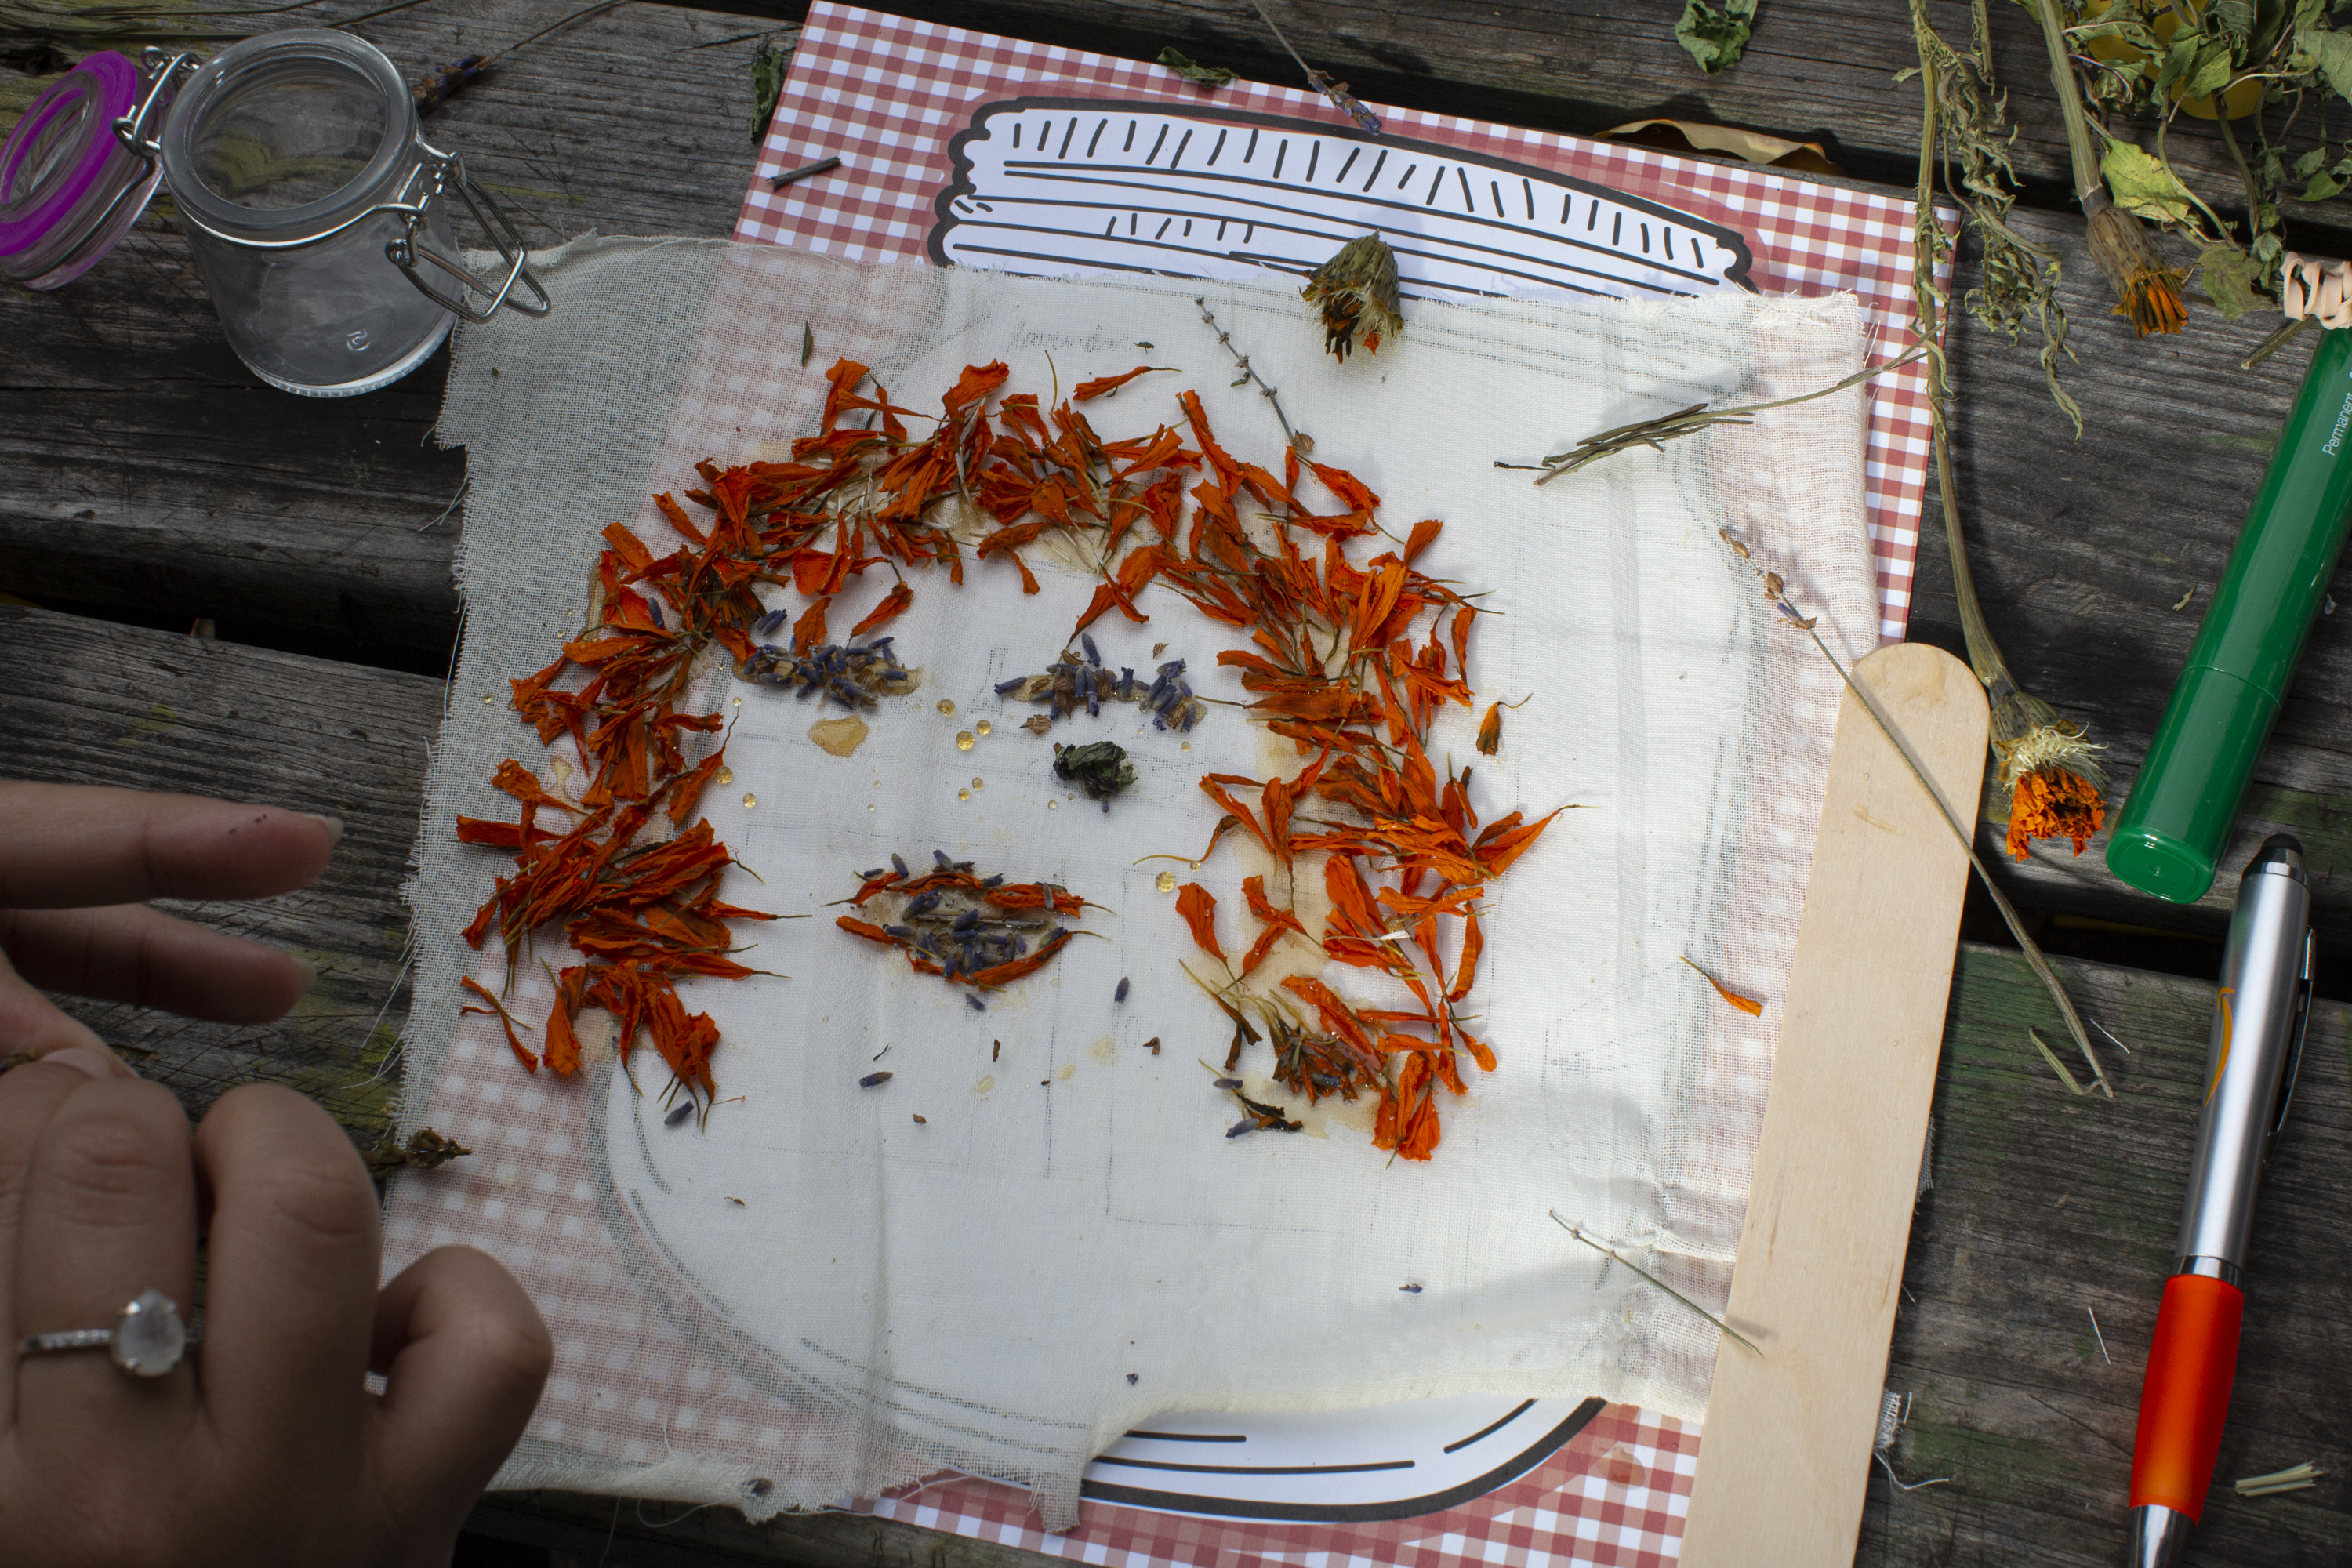 A drawing in the shape of a human face made out of honey and dry herbs (Marigold dried petals and Lavender). Photo by Cinthya Santos-Briones for Brewing Memories workshop, October 24, 2020.